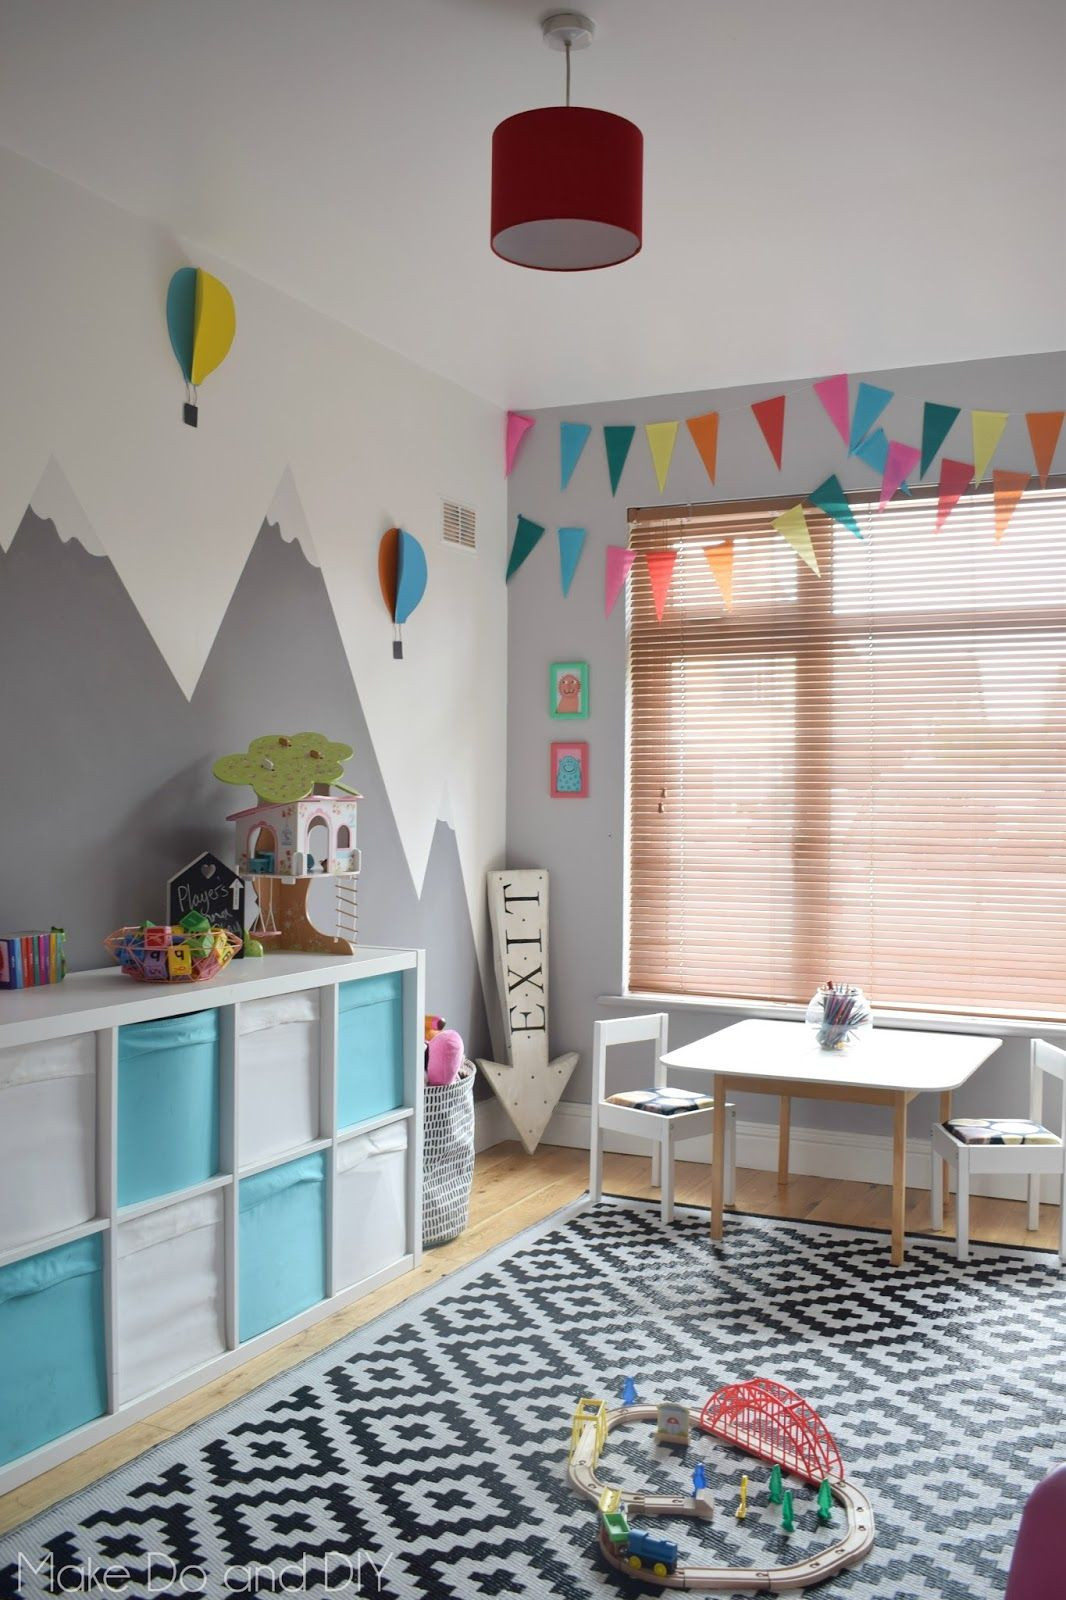 Best ideas about DIY Kids Room . Save or Pin adventure playroom makeover diy Now.